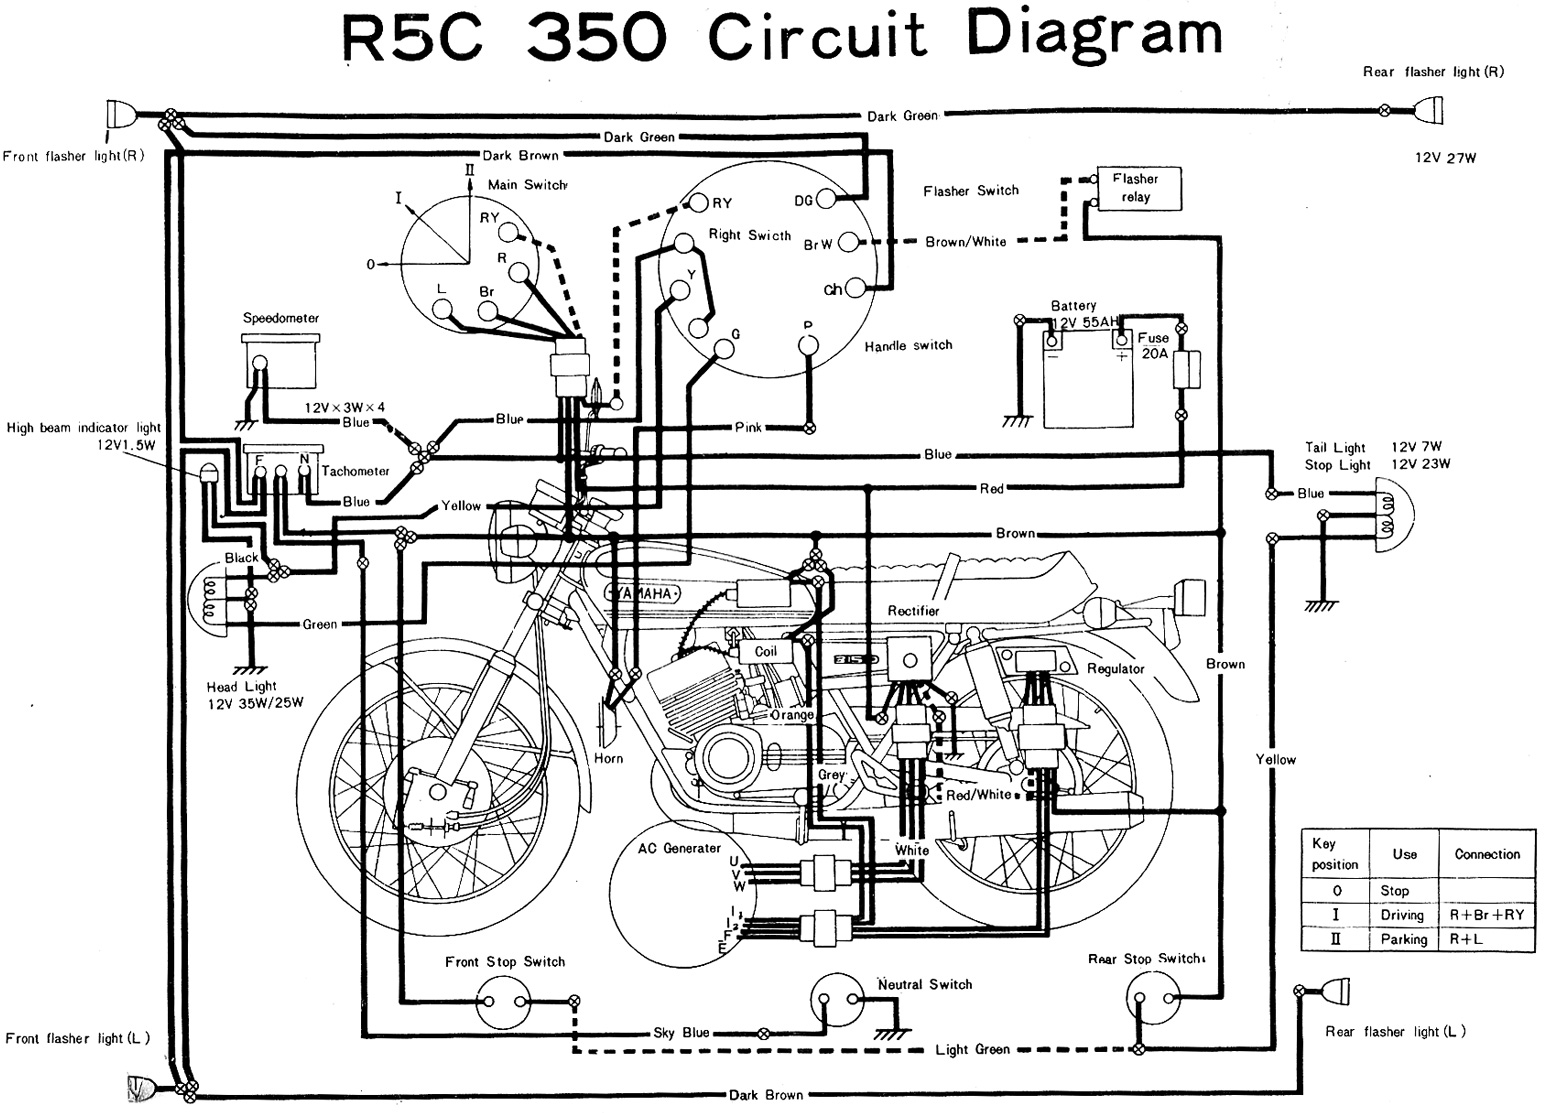 Yamaha R5C 350 Electrical Wiring Diagram1 motorcycle wiring diagrams motorcycle wiring harness diagram at bakdesigns.co